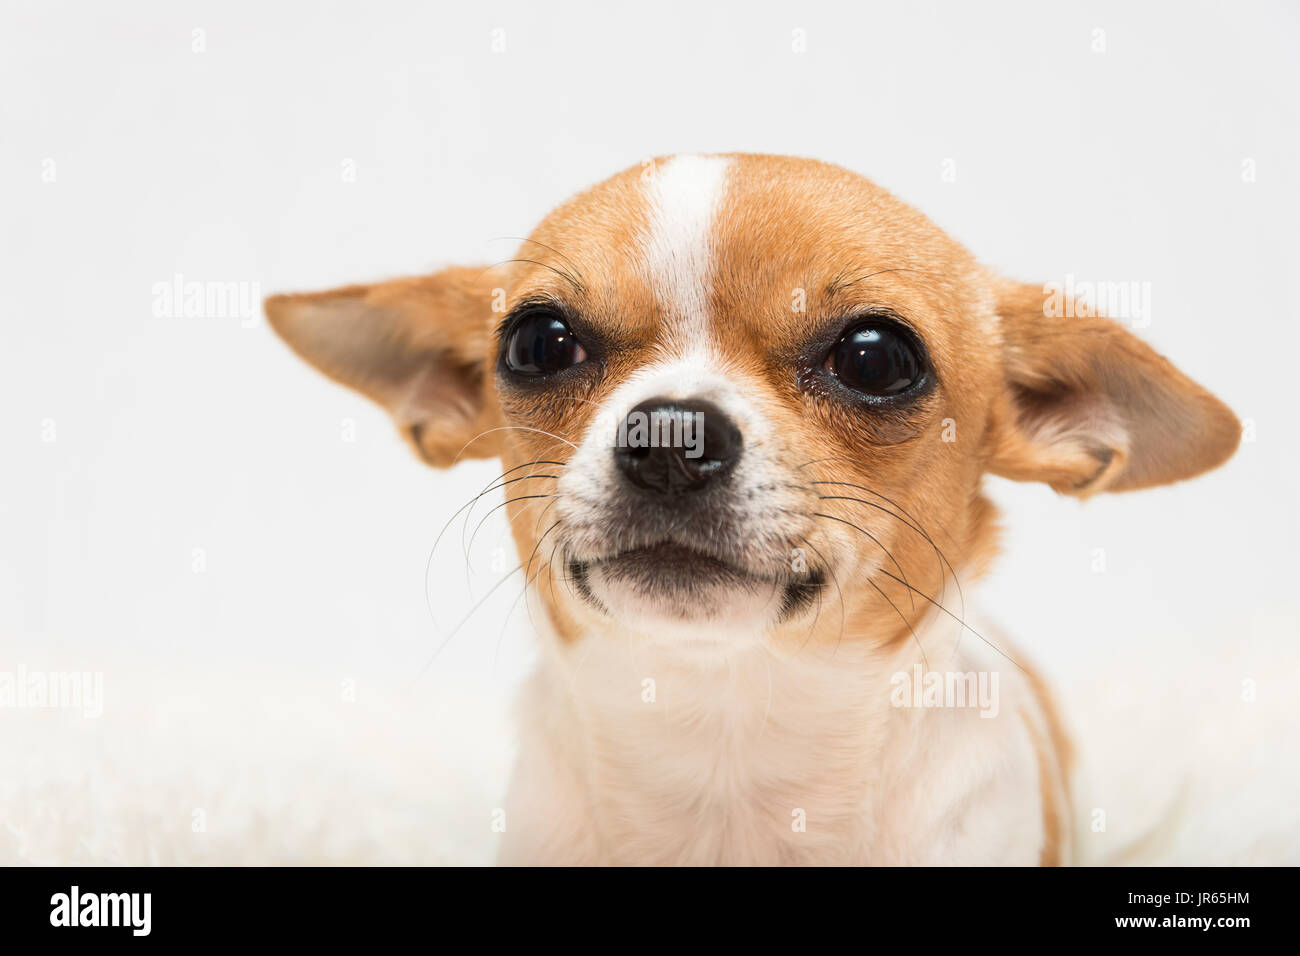 Cute Tan And White Chihuahua Puppy On A White Background Stock Photo Alamy